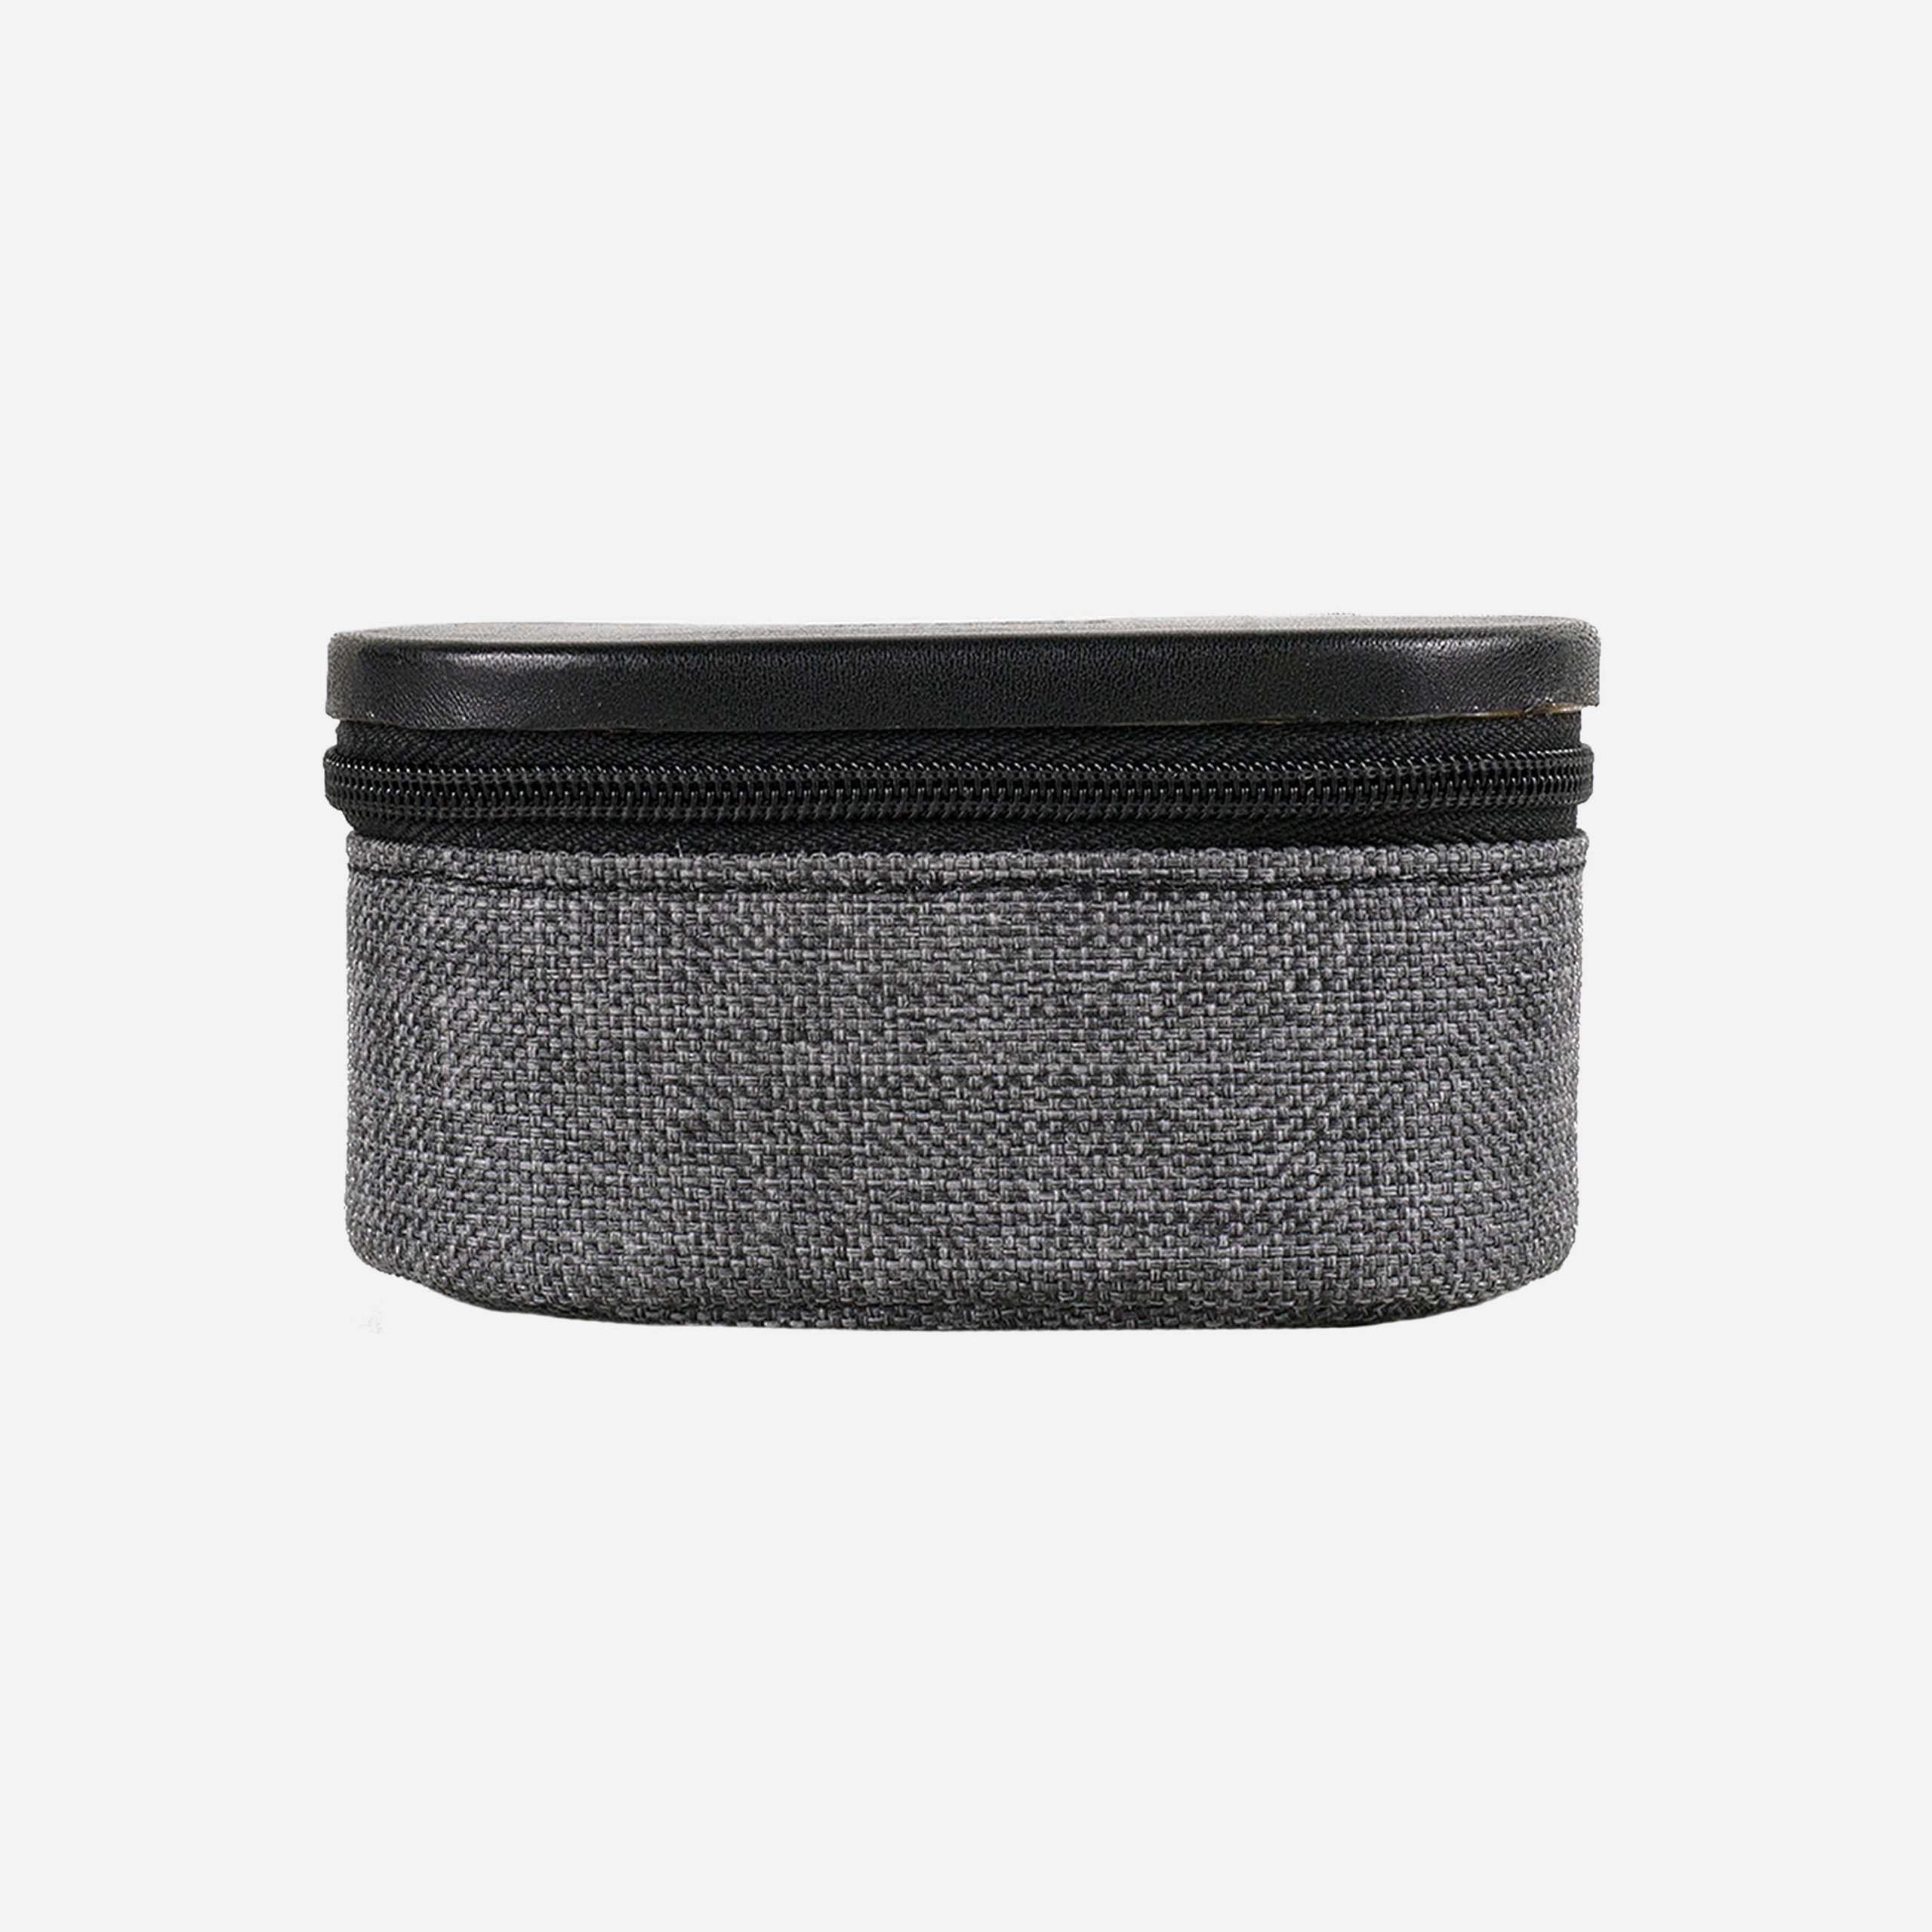 Moment Lens Pouch Side Flat